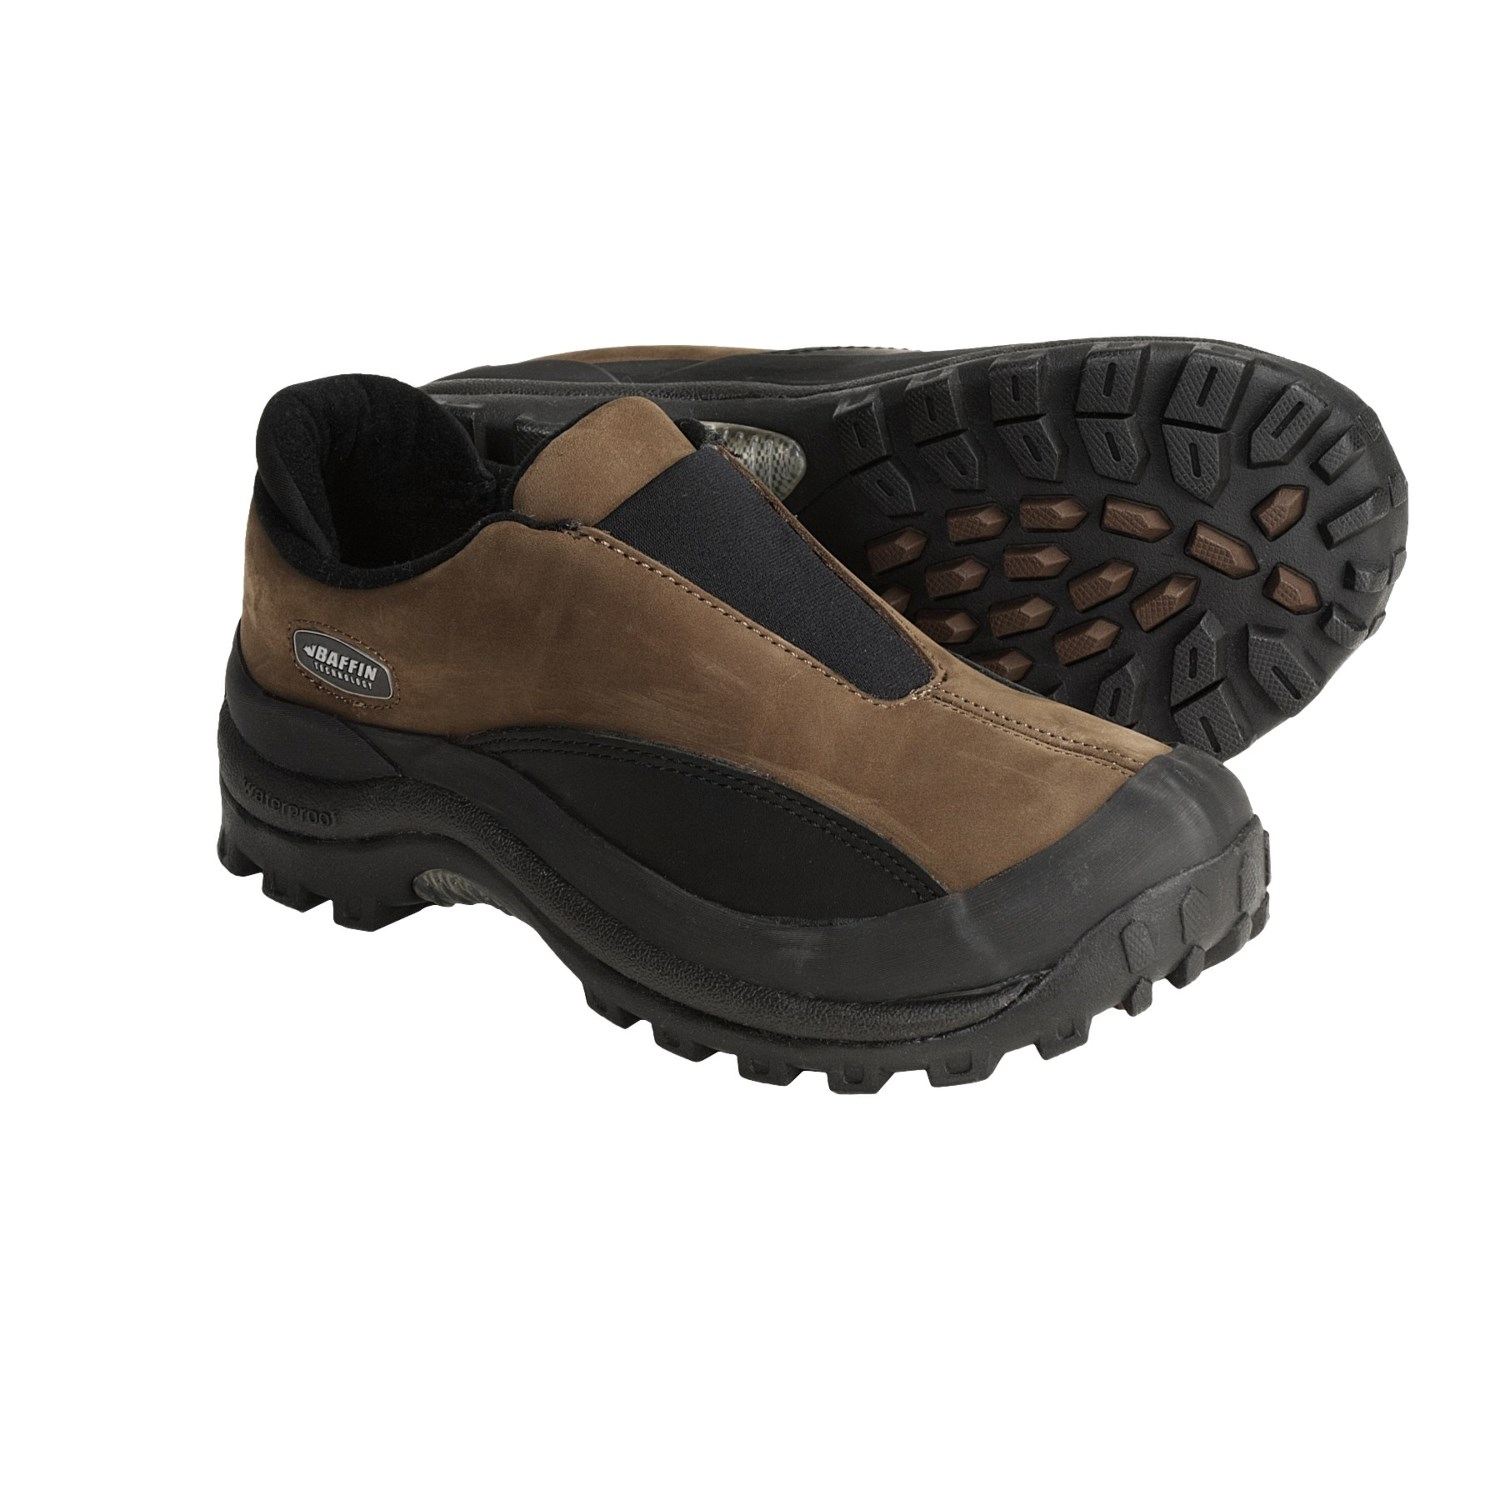 Baffin Seattle Winter Shoes (For Women) 3763K - Save 36%